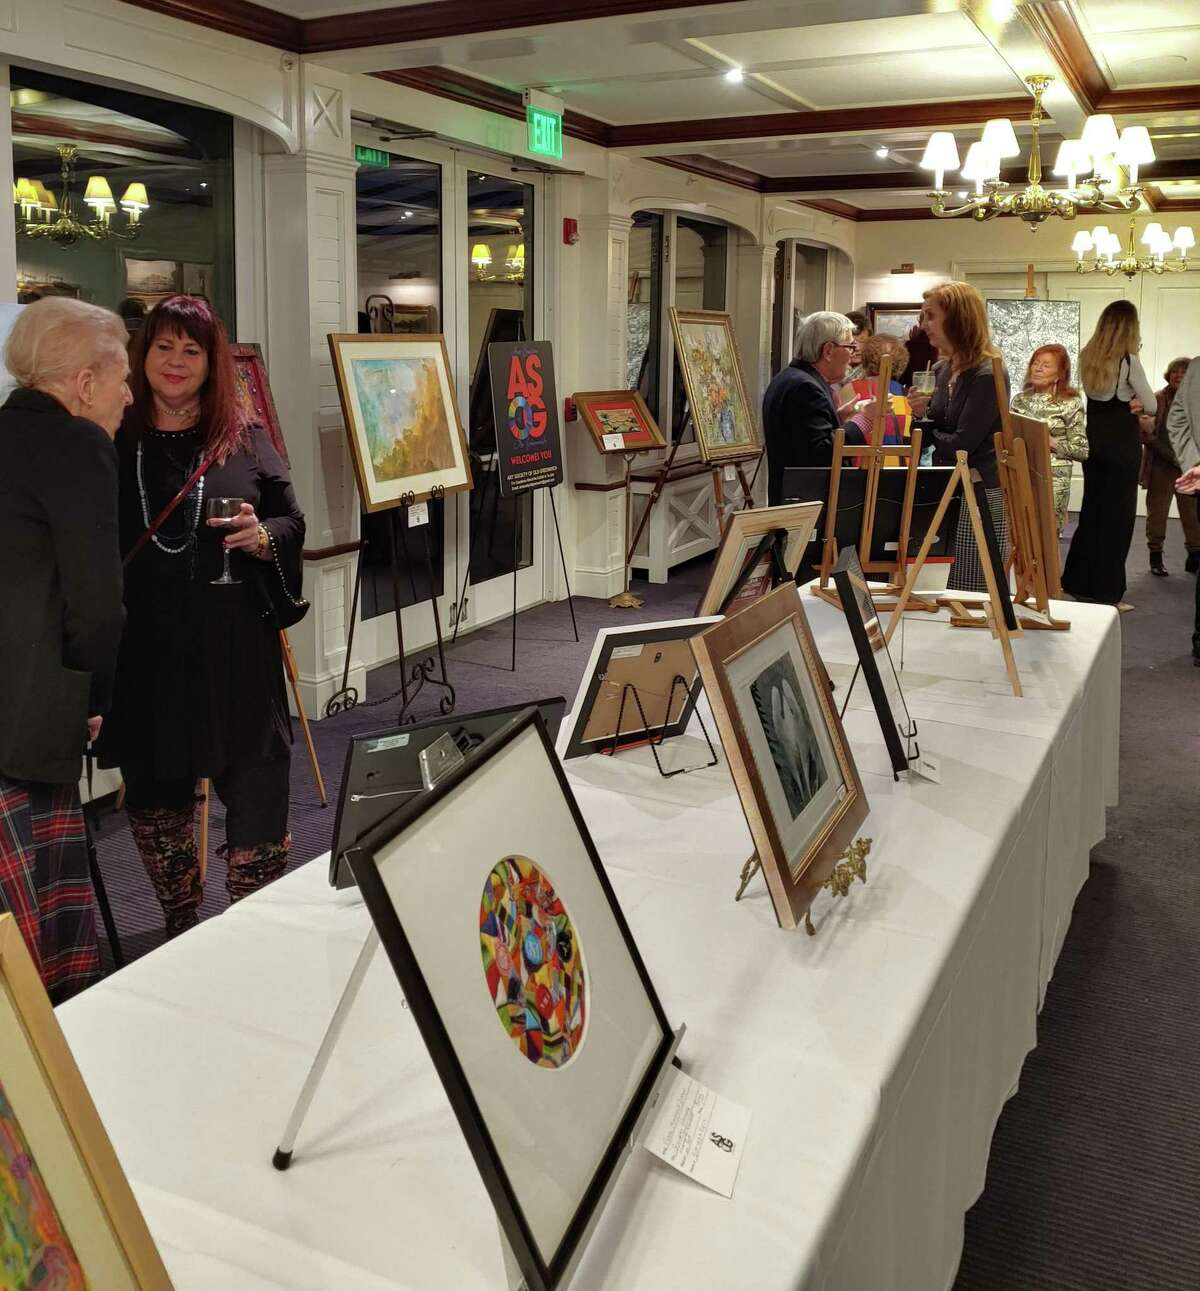 The art exhibit at ASOG 2020 Winterfest, where artists enjoyed chatting and viewing the artworks.